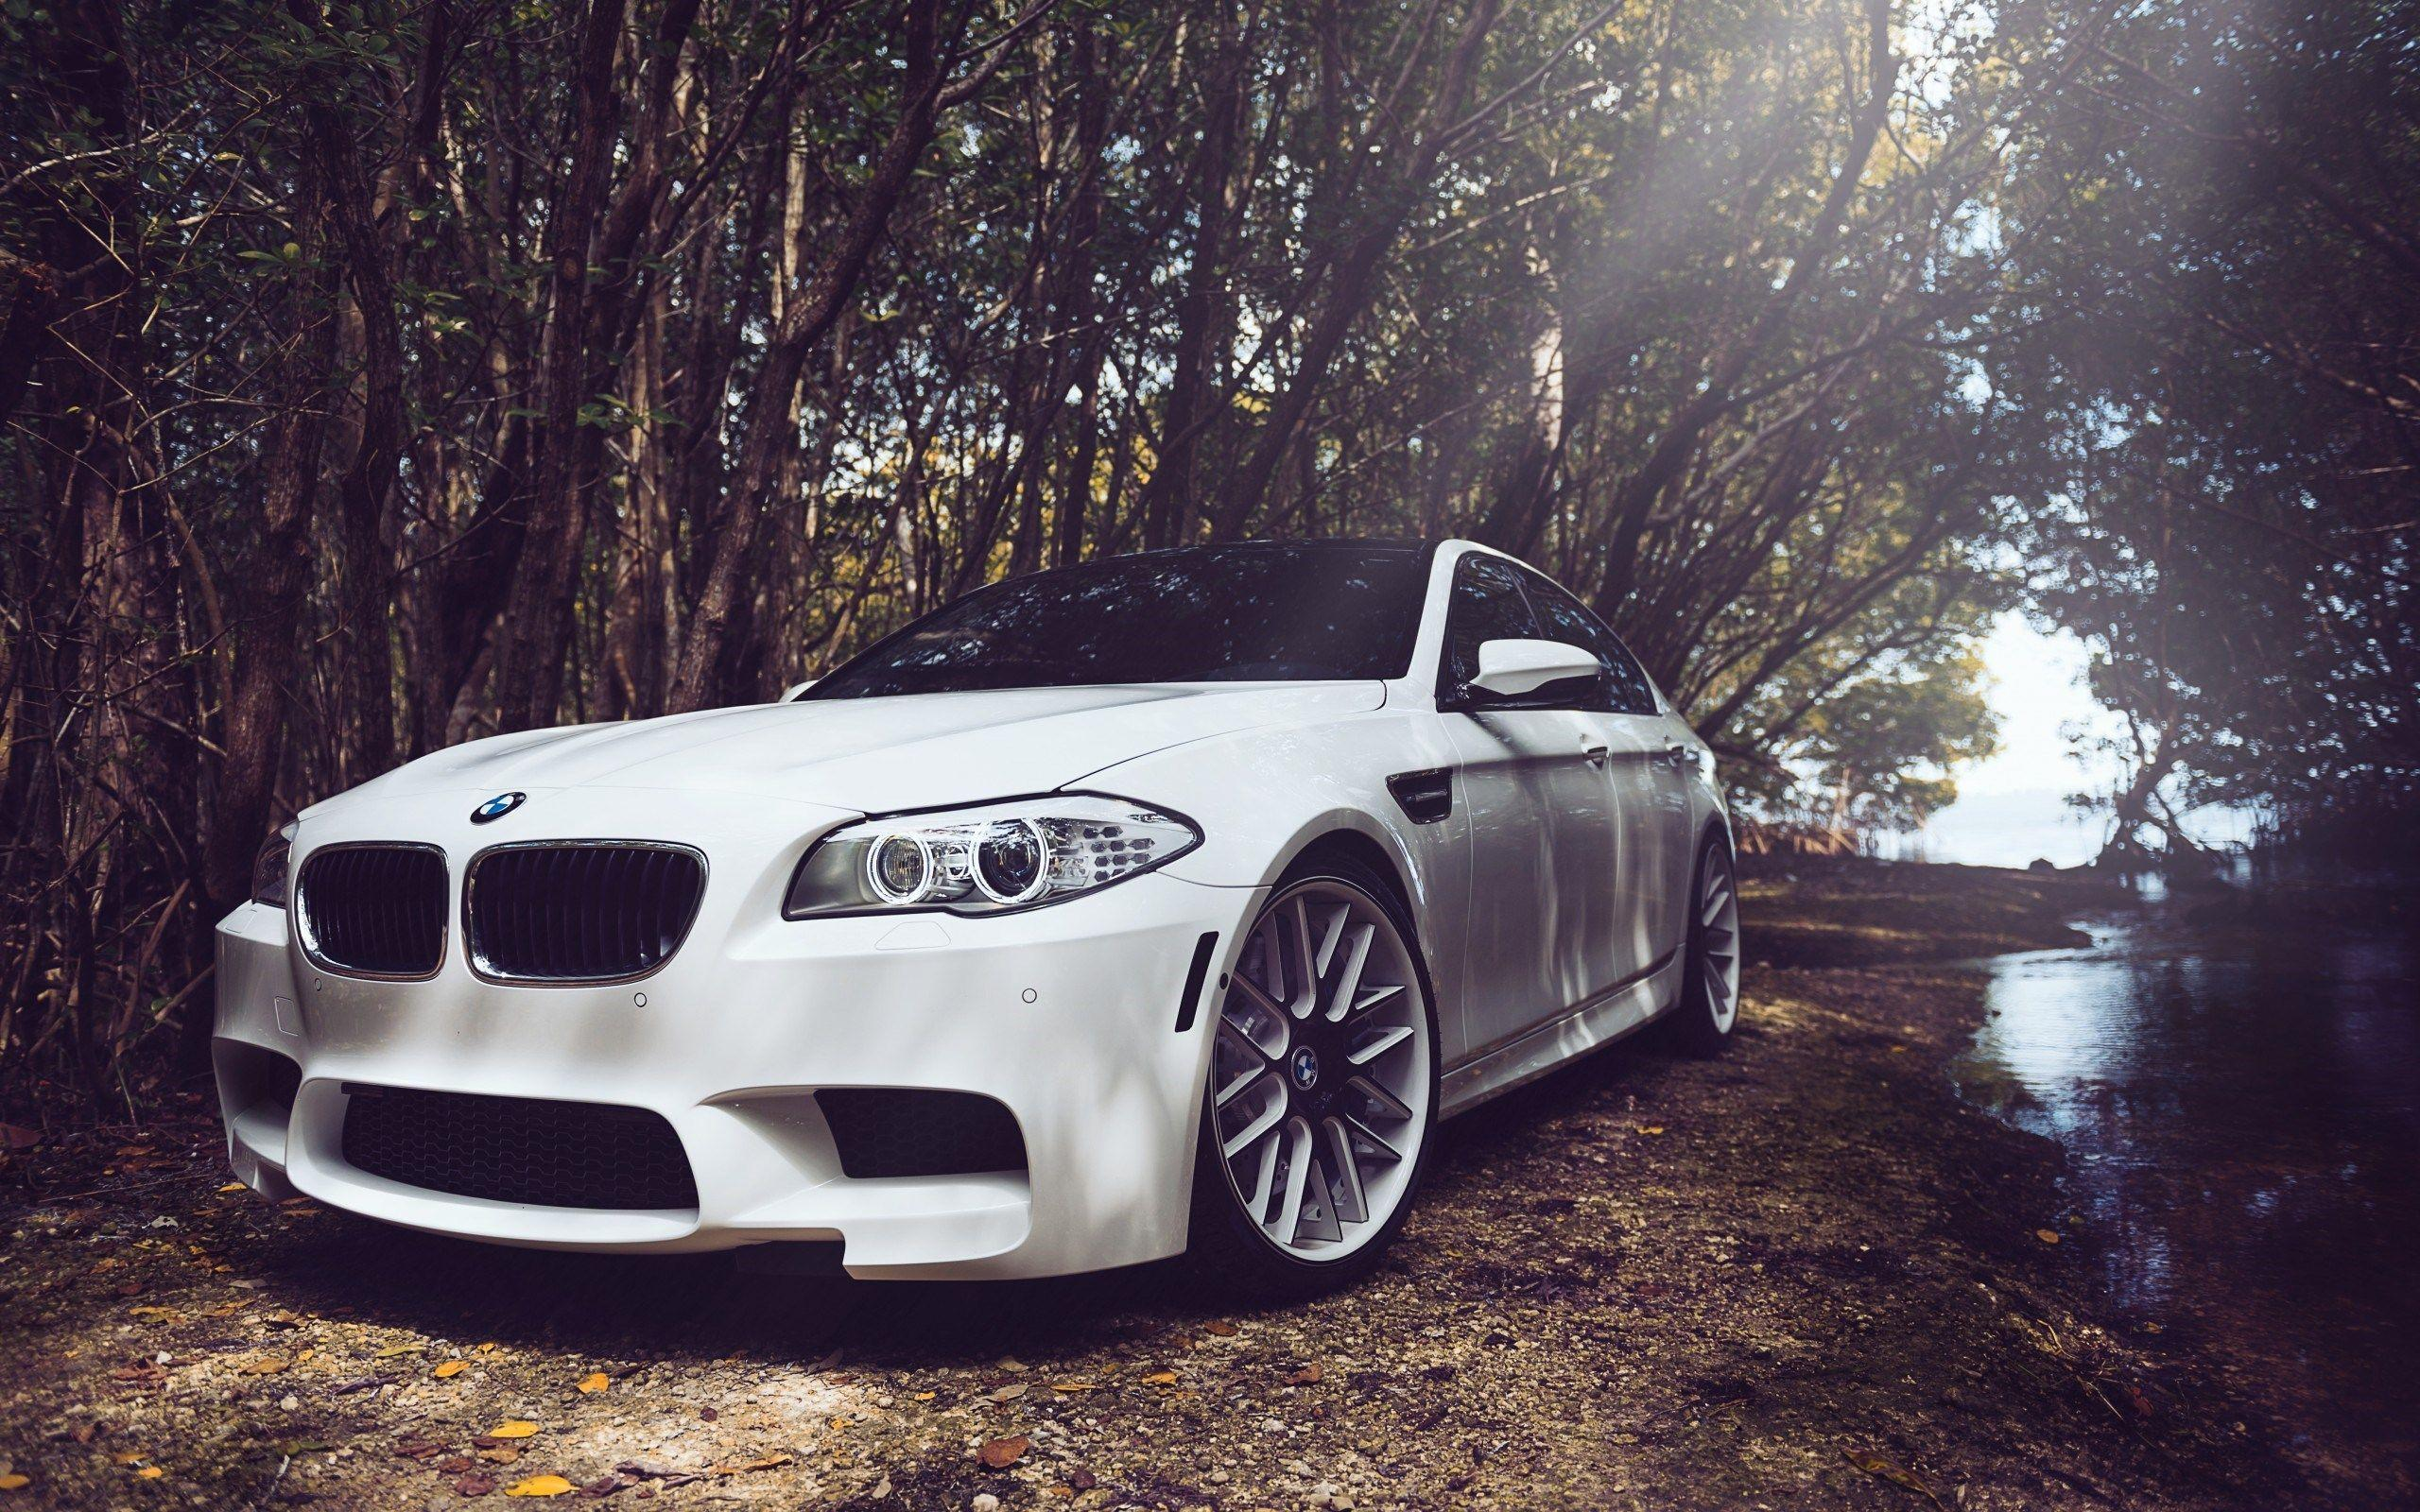 BMW M5 F10 White Car HD Wallpapers